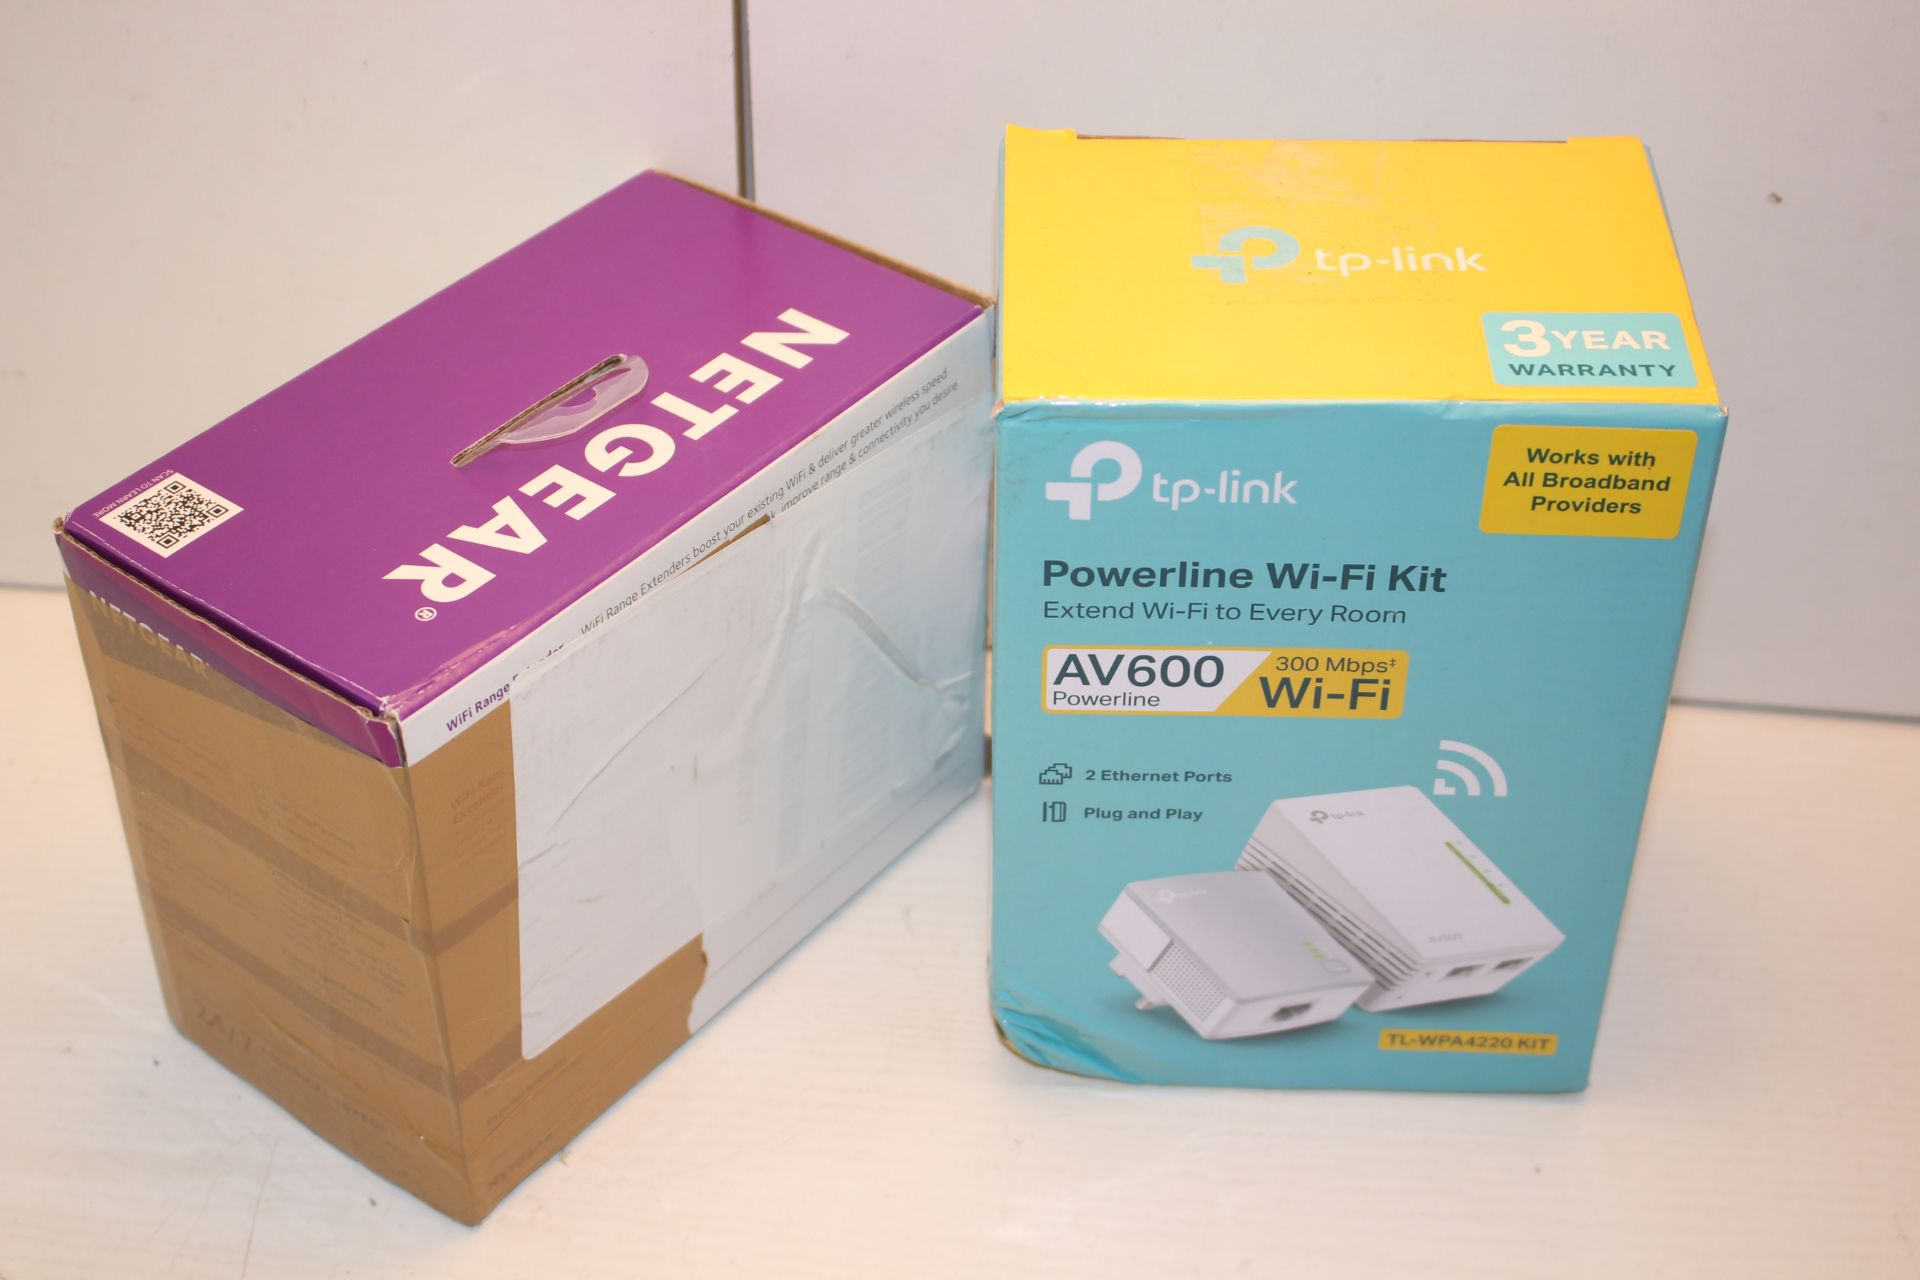 2X BOXED ASSORTED ITEMS TO INCLUDE TP-LINK POWERLINE WIFI KIT & NETGEAR WIFI RANGE EXTENDER